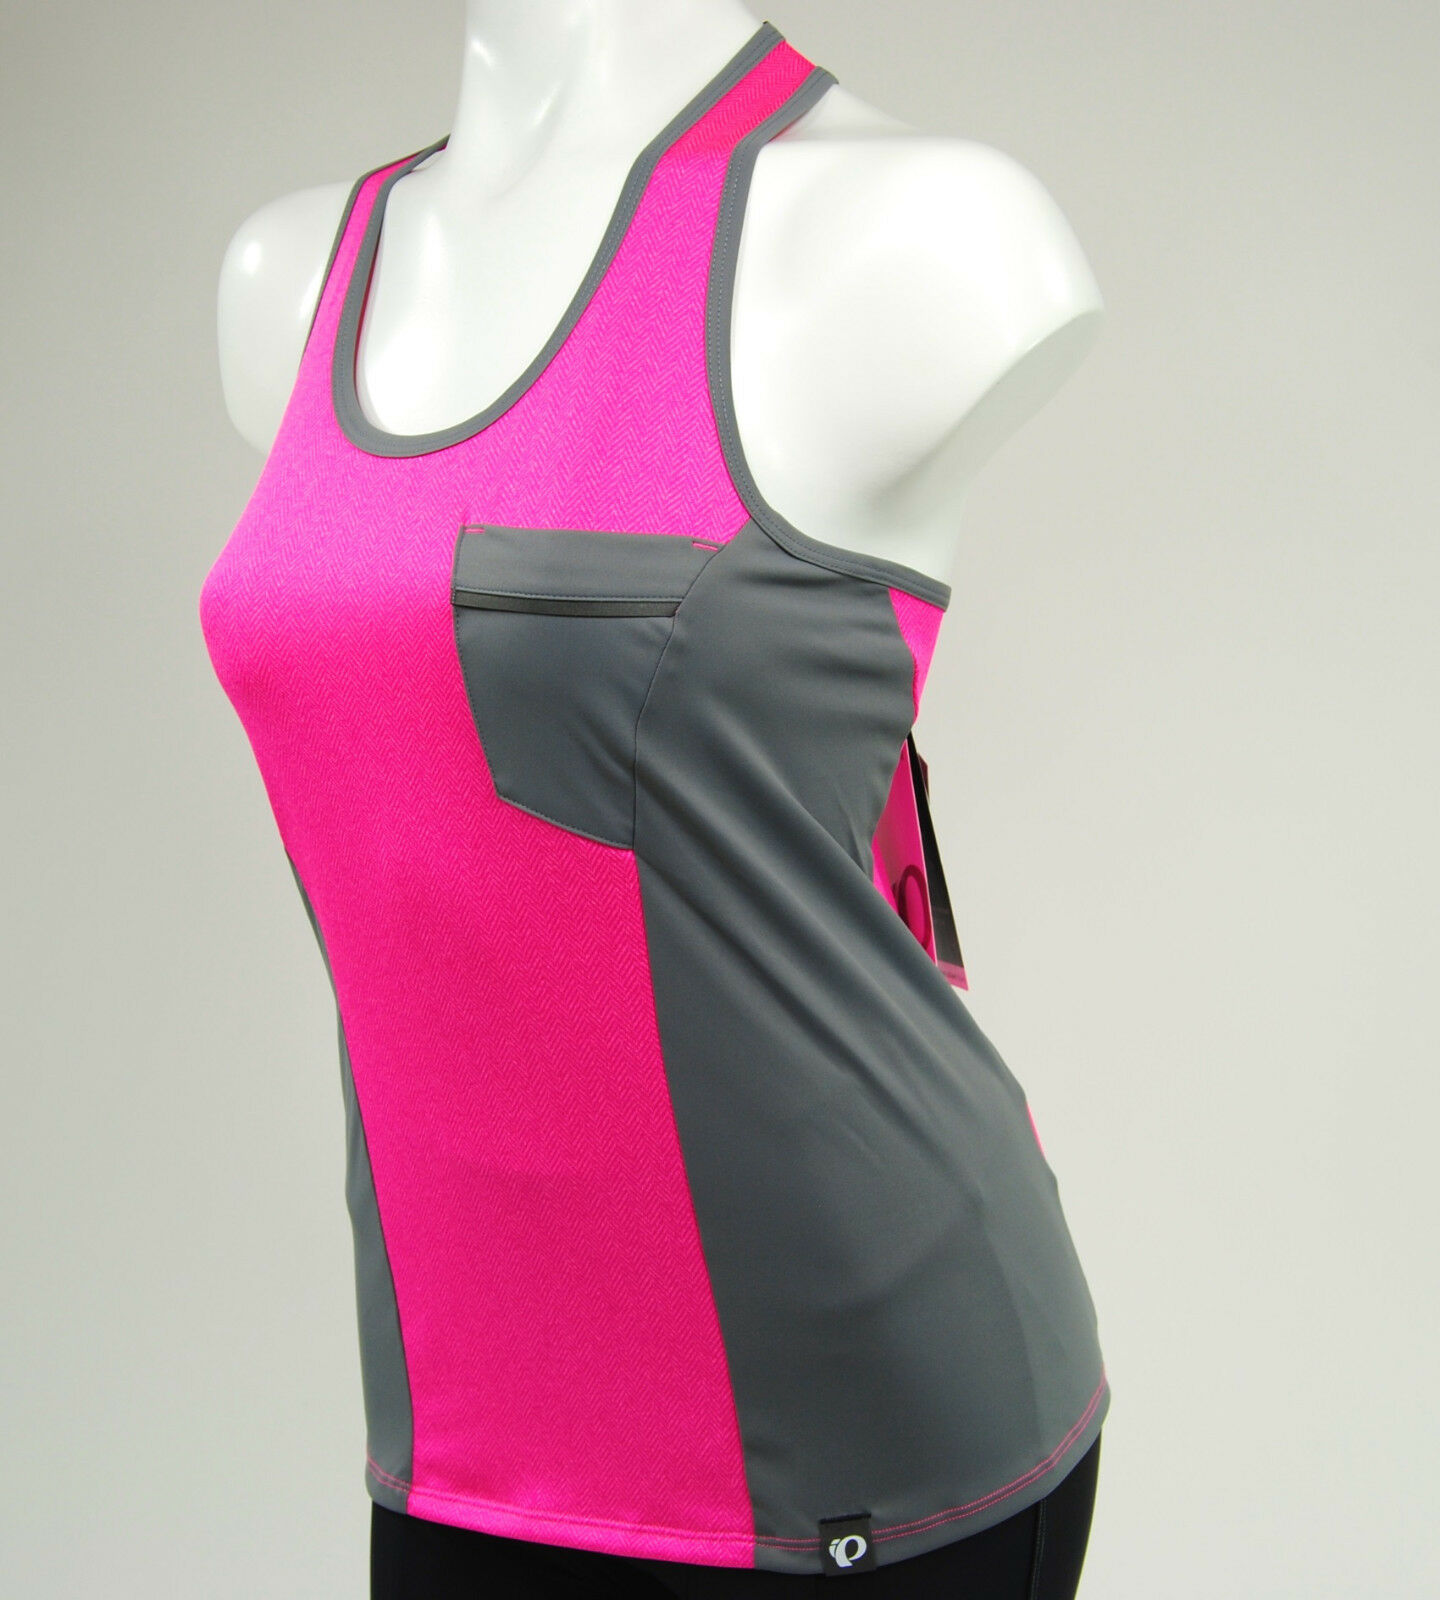 Pearl Izumi Women's Select Escape Sleeveless Cycling Tank Top Jersey, Pink,Small